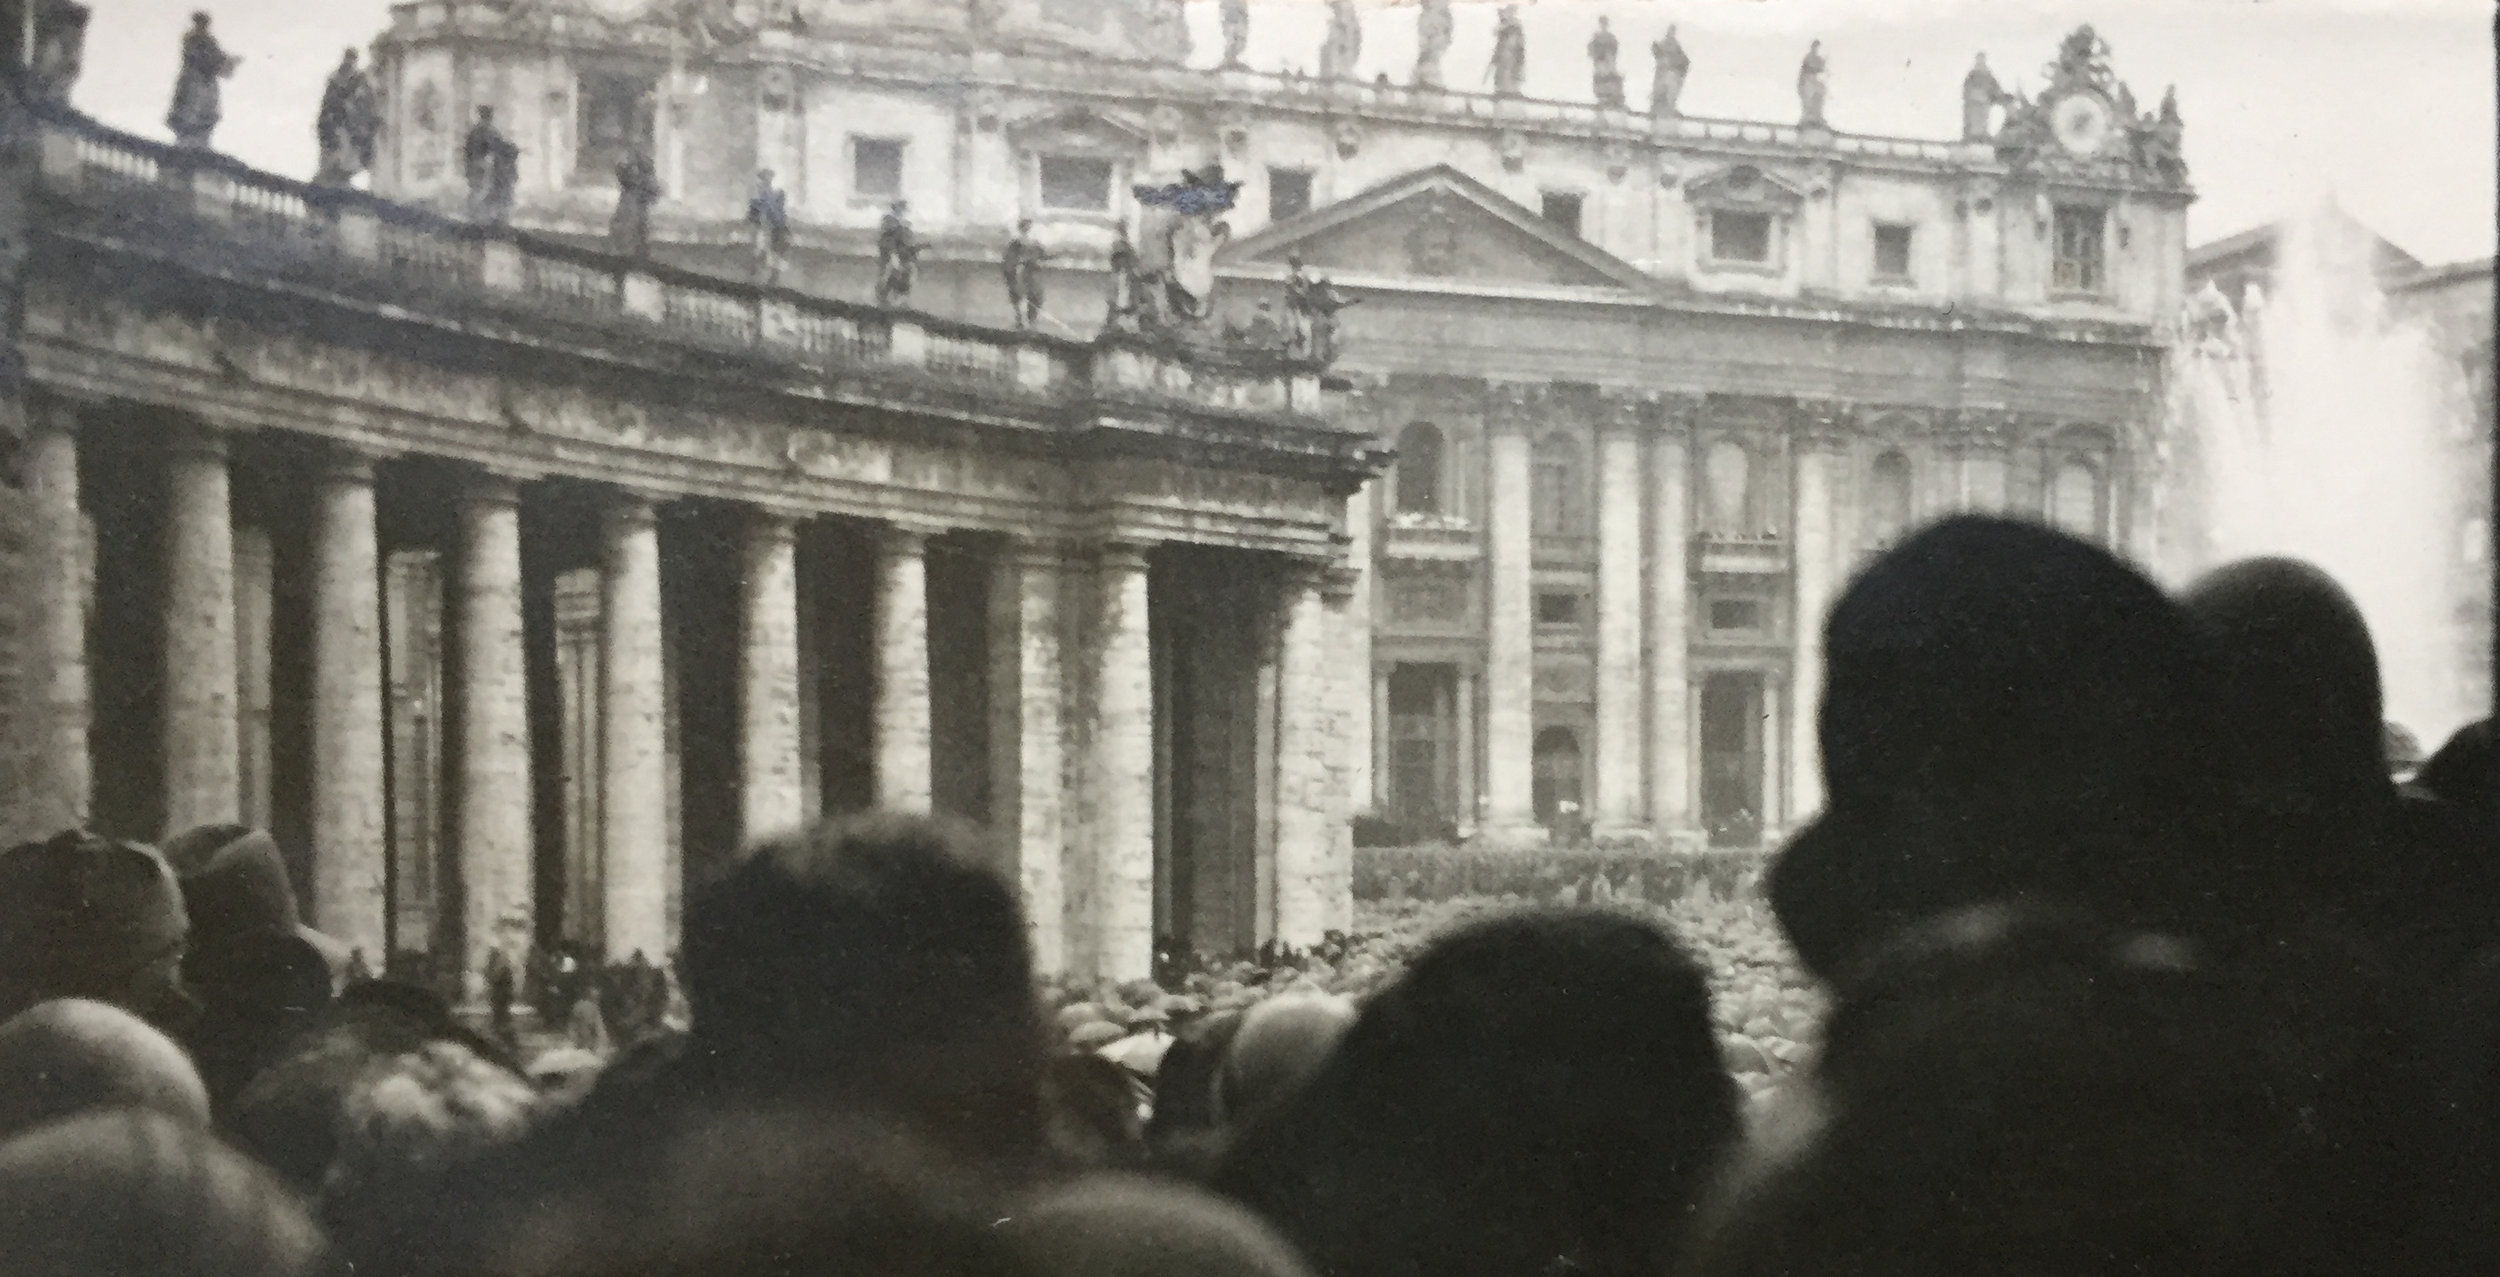 The crowd in St Peter's Square on Tuesday, 12 February 1929, awaiting the blessing of Pope Pius XI   Archivum Venerabilis Collegii Anglorum de Urbe (AVCAU), Photographic collection, 1929